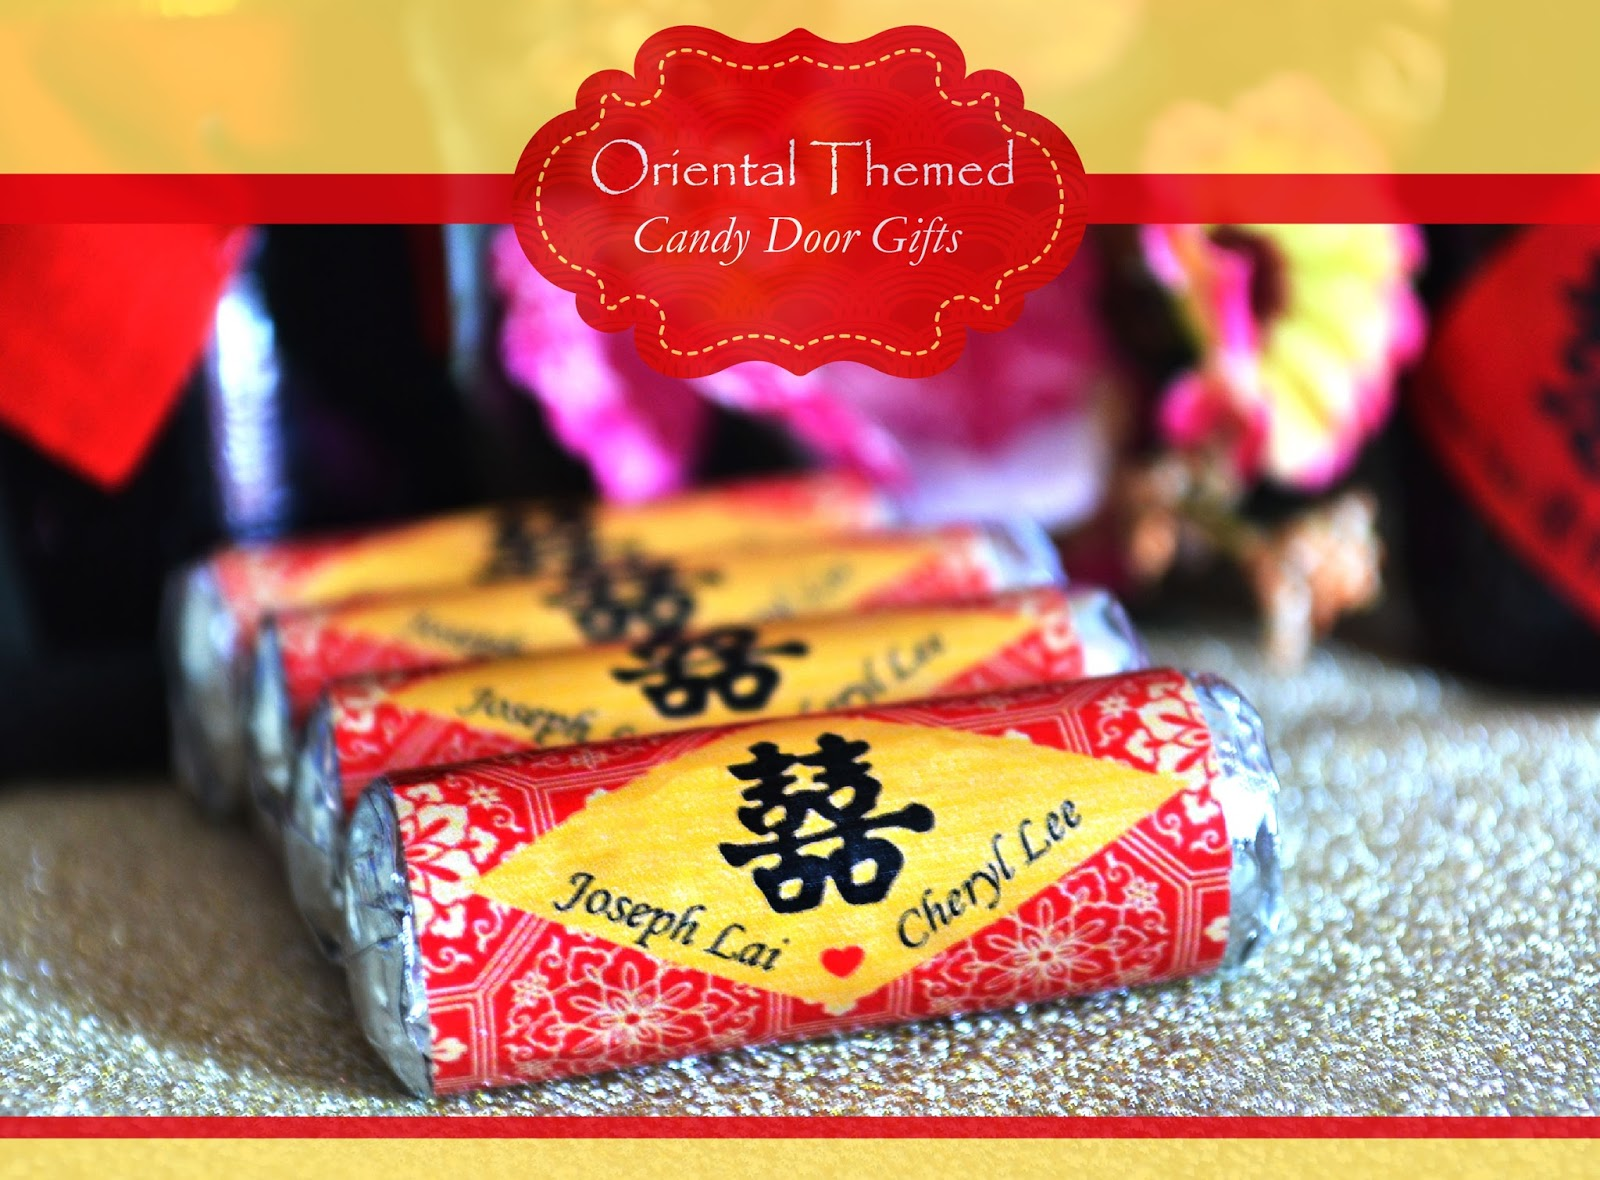 There candy door gifts represent sweetness of the newlyweds and the wrapper is designed according to an Oriental Themed wedding reception. & Wedding Card Malaysia | Crafty Farms Handmade : Oriental Themed ... pezcame.com